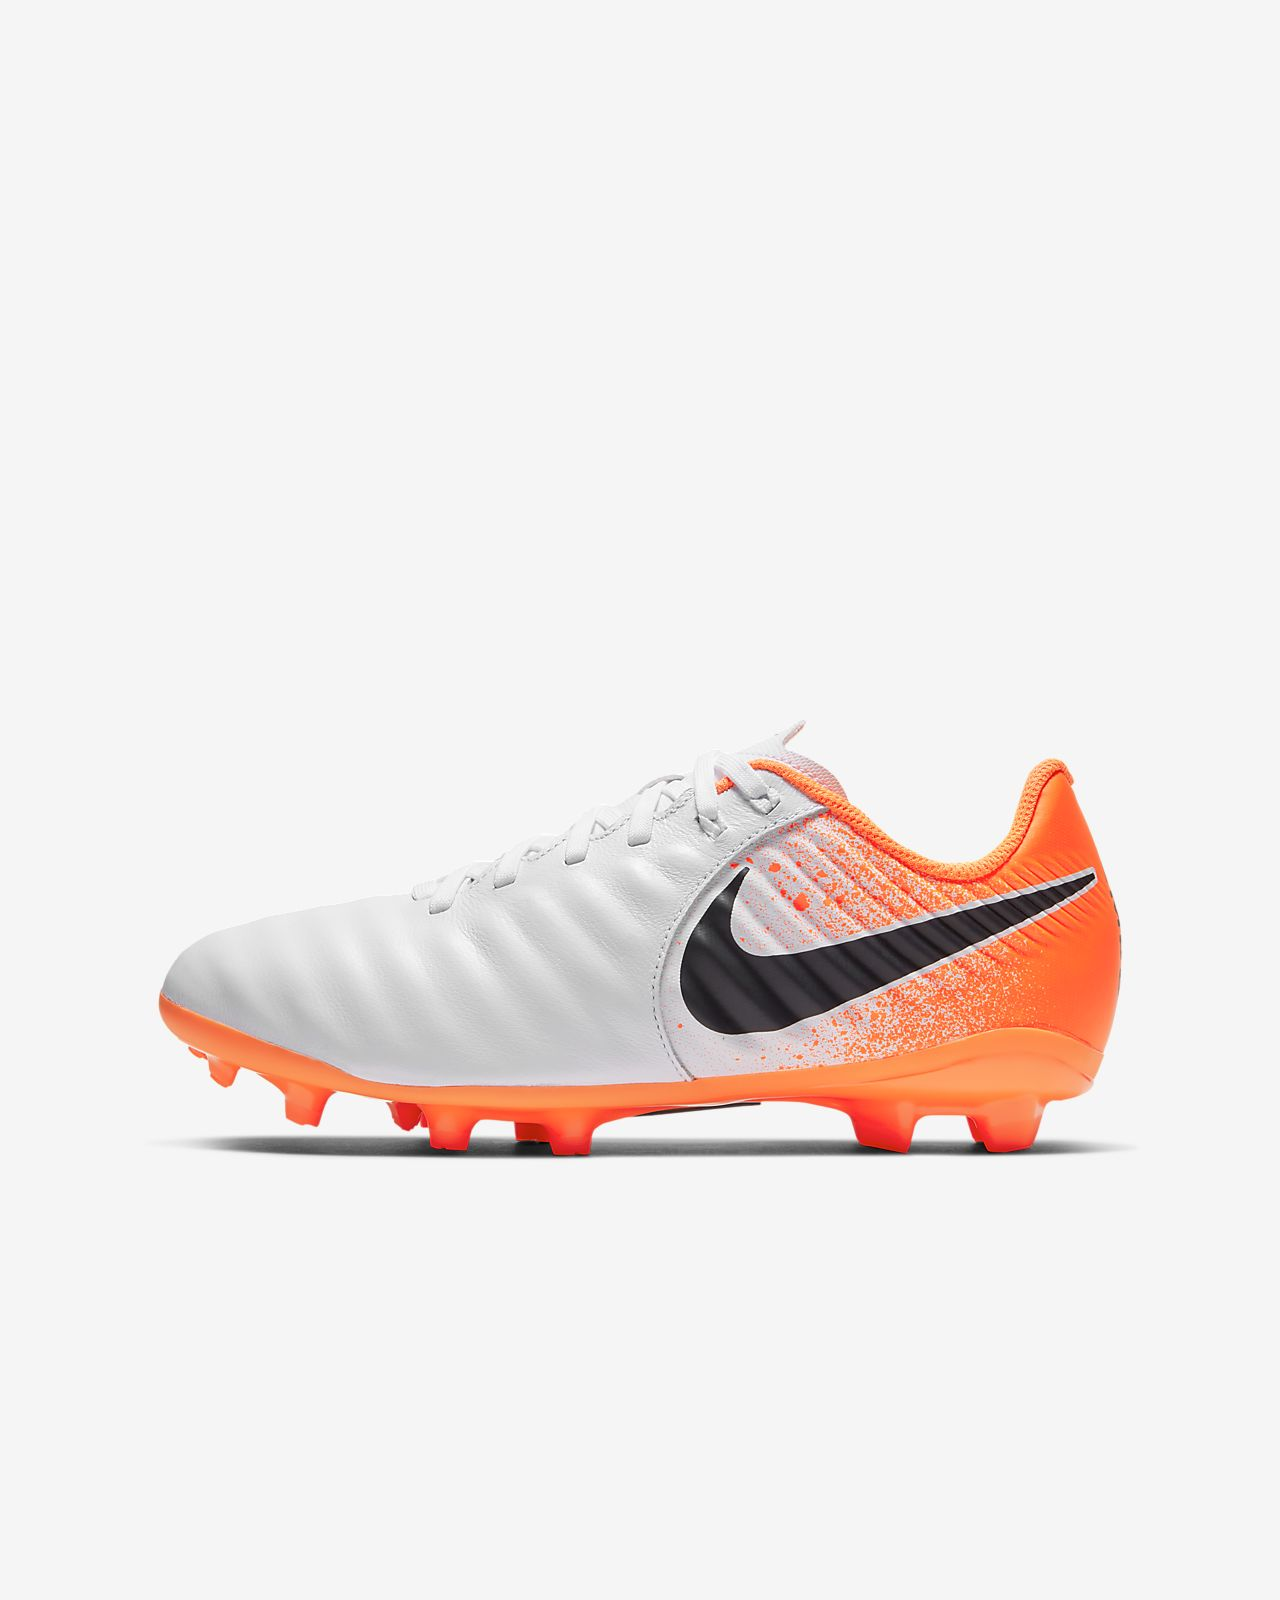 0a41d4c4b ... Kids  Firm-Ground Football Boot. Nike Jr. Legend 7 Academy FG